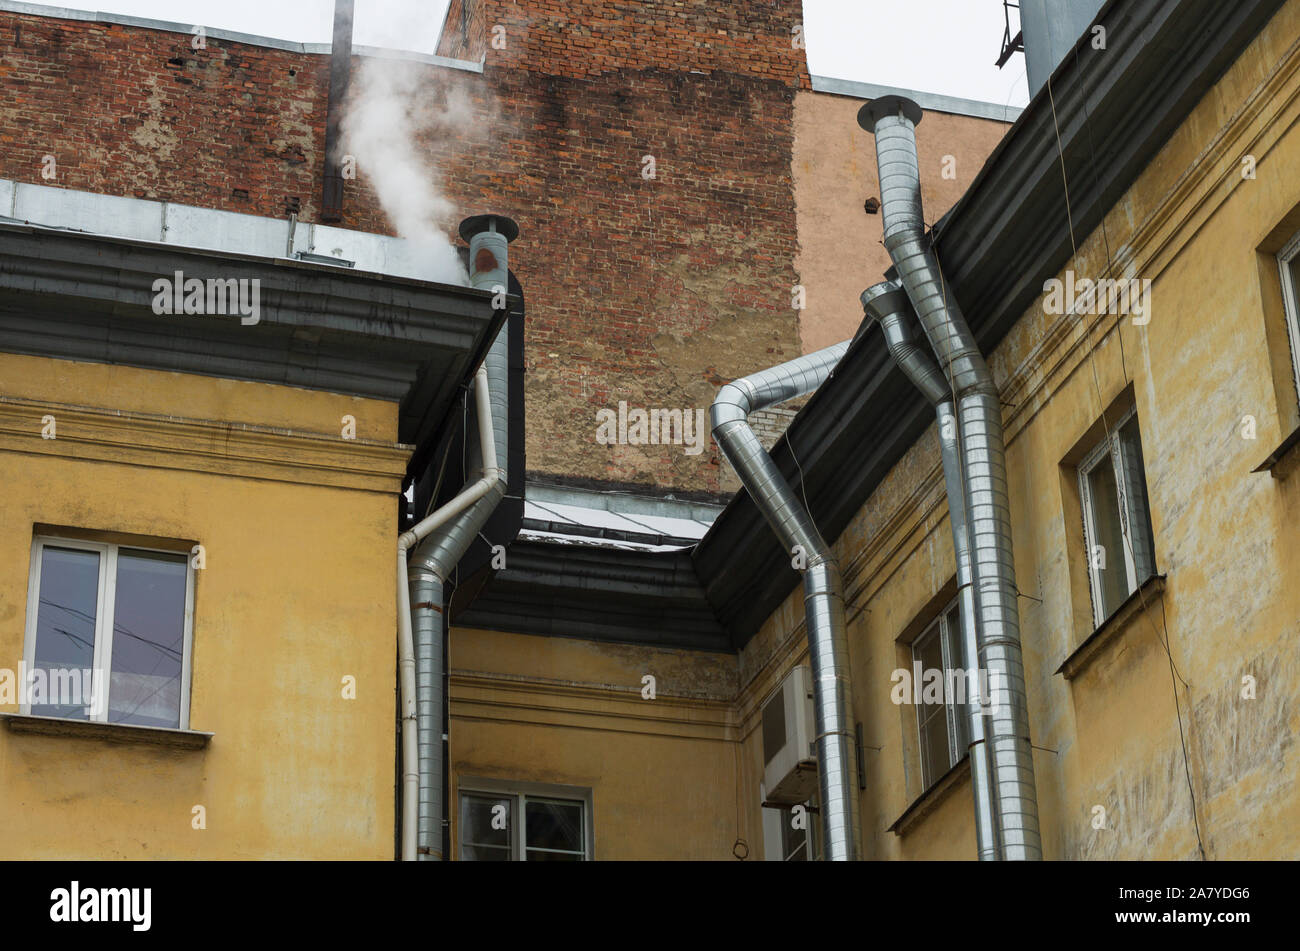 Yellow wall of old house with shiny silvery pipes ventilation system Stock Photo